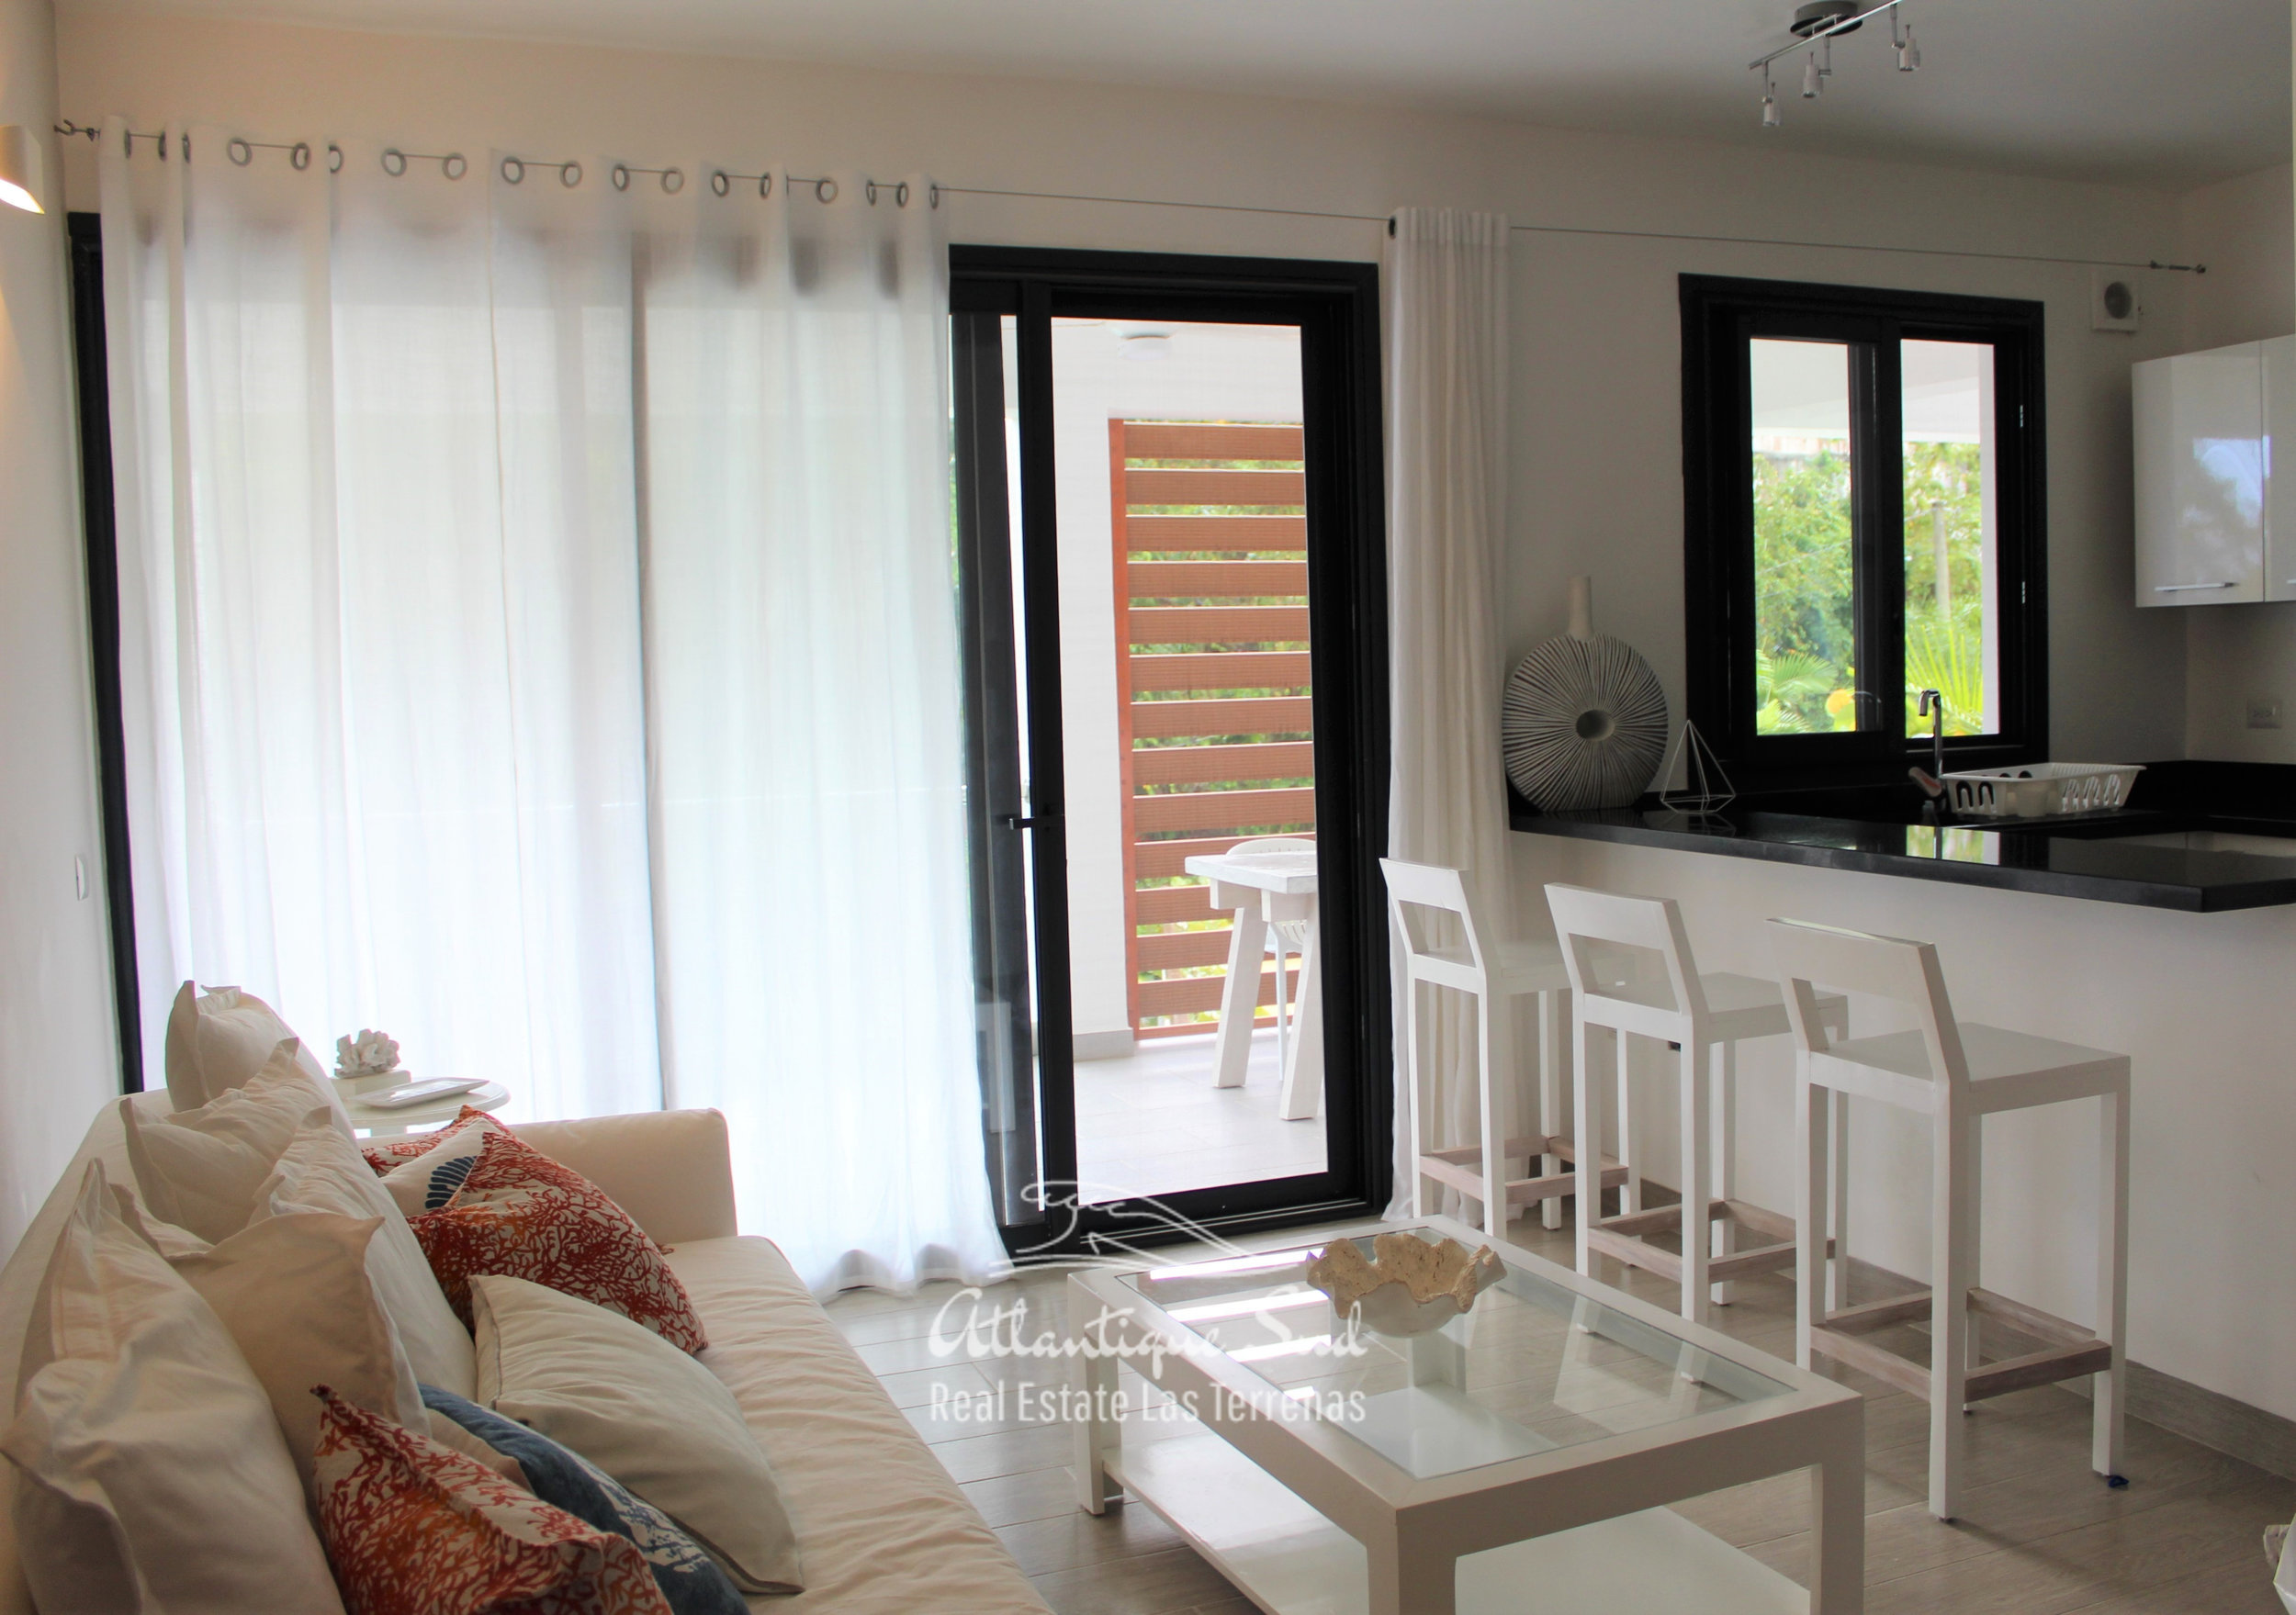 Cozy-1-bedroom-apartment-in-gated-community-close-to-the-center-of-lasterrenas8.jpg